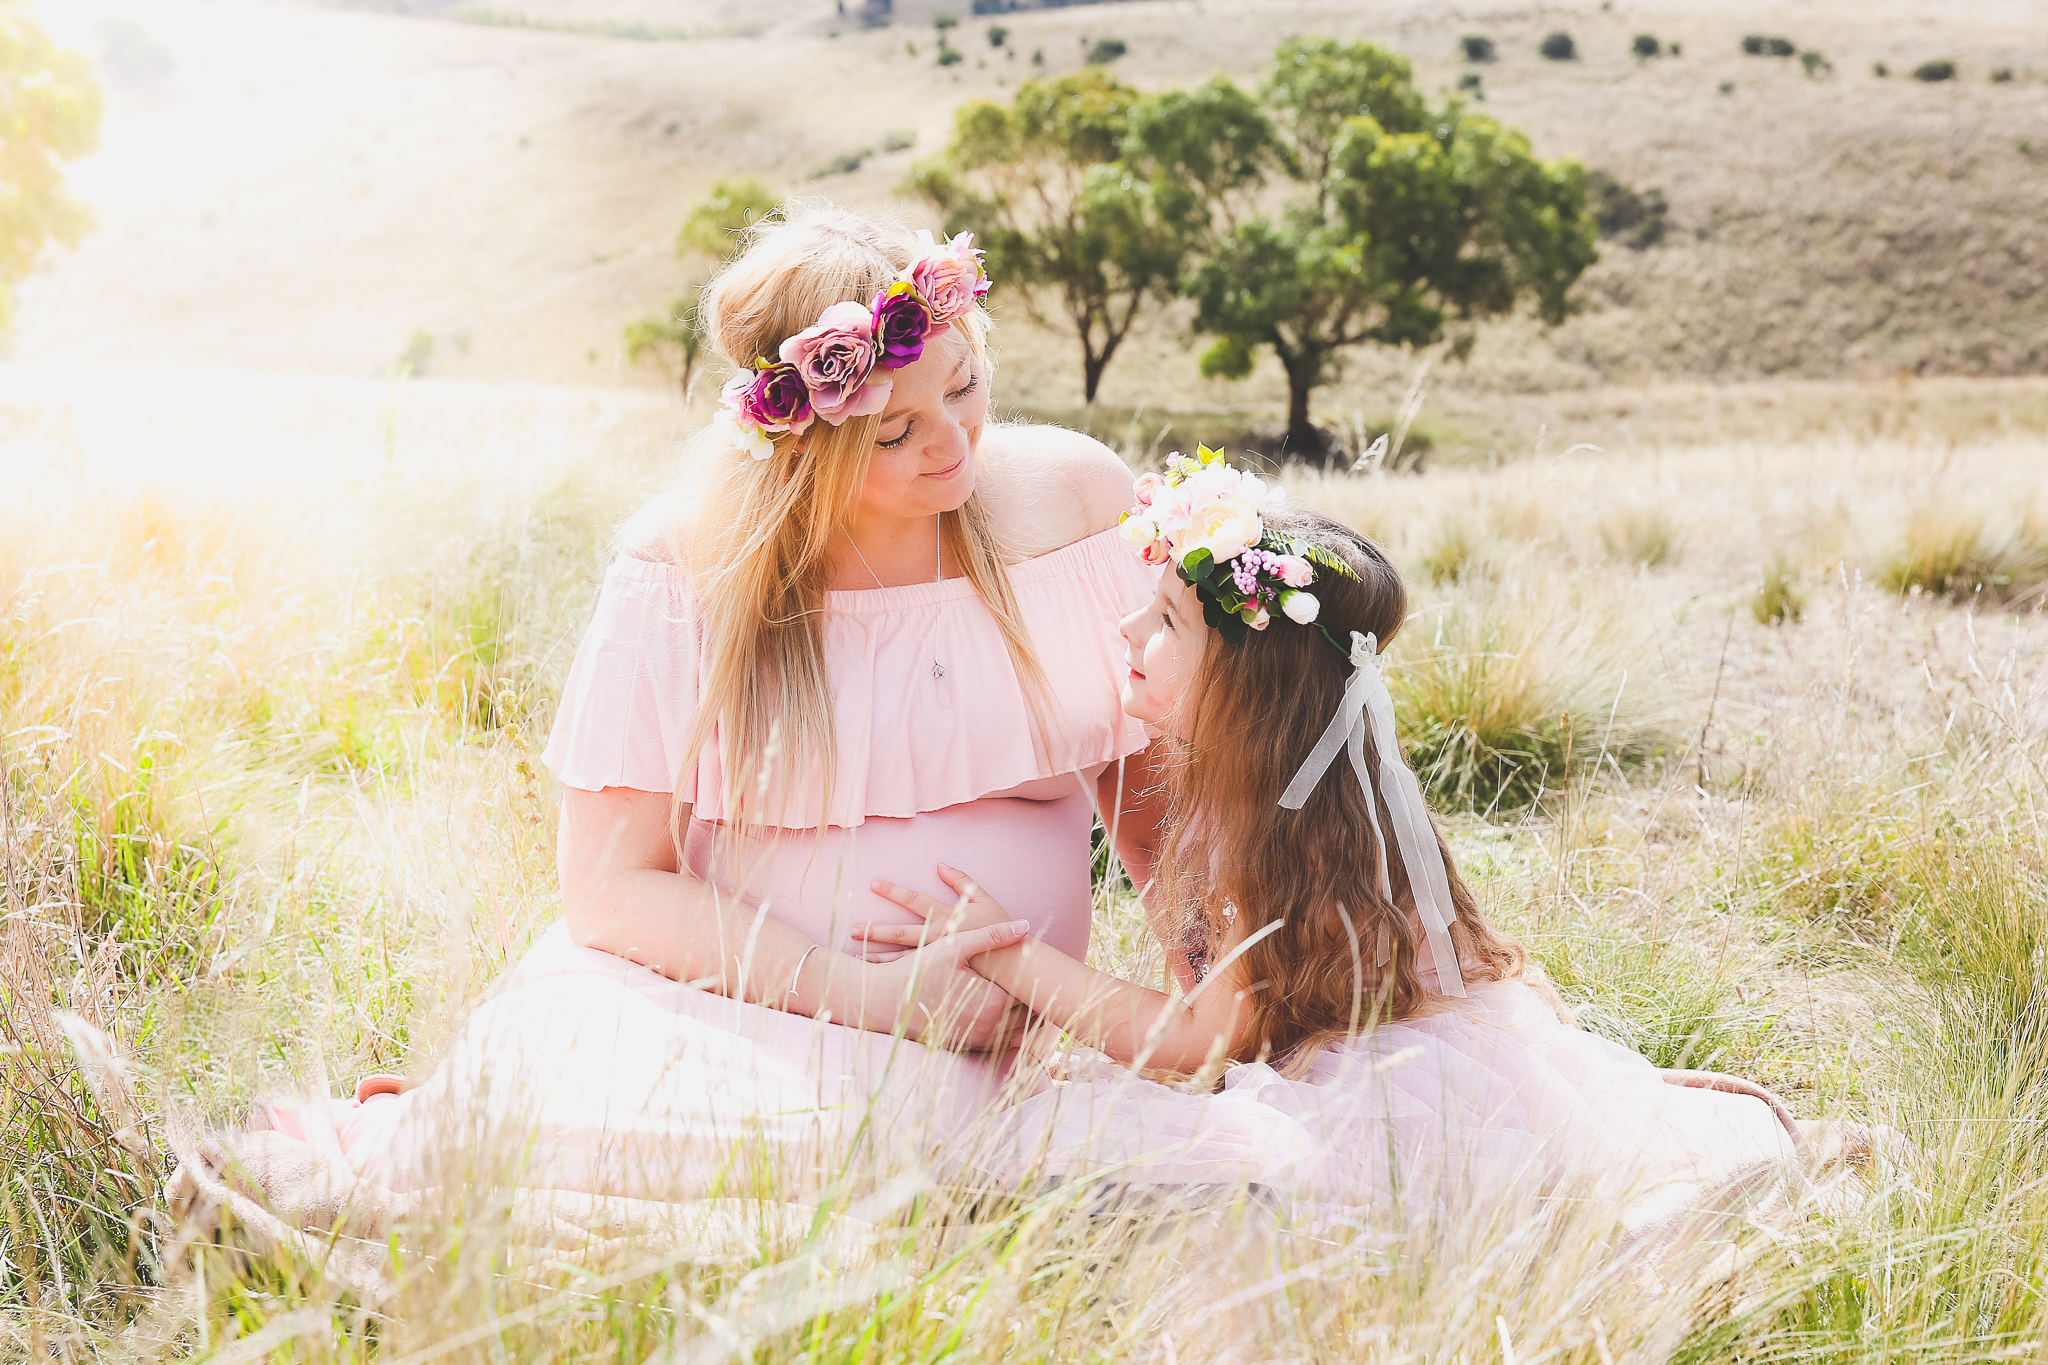 maternity portrait photography maternity studio outdoor photographer modern country